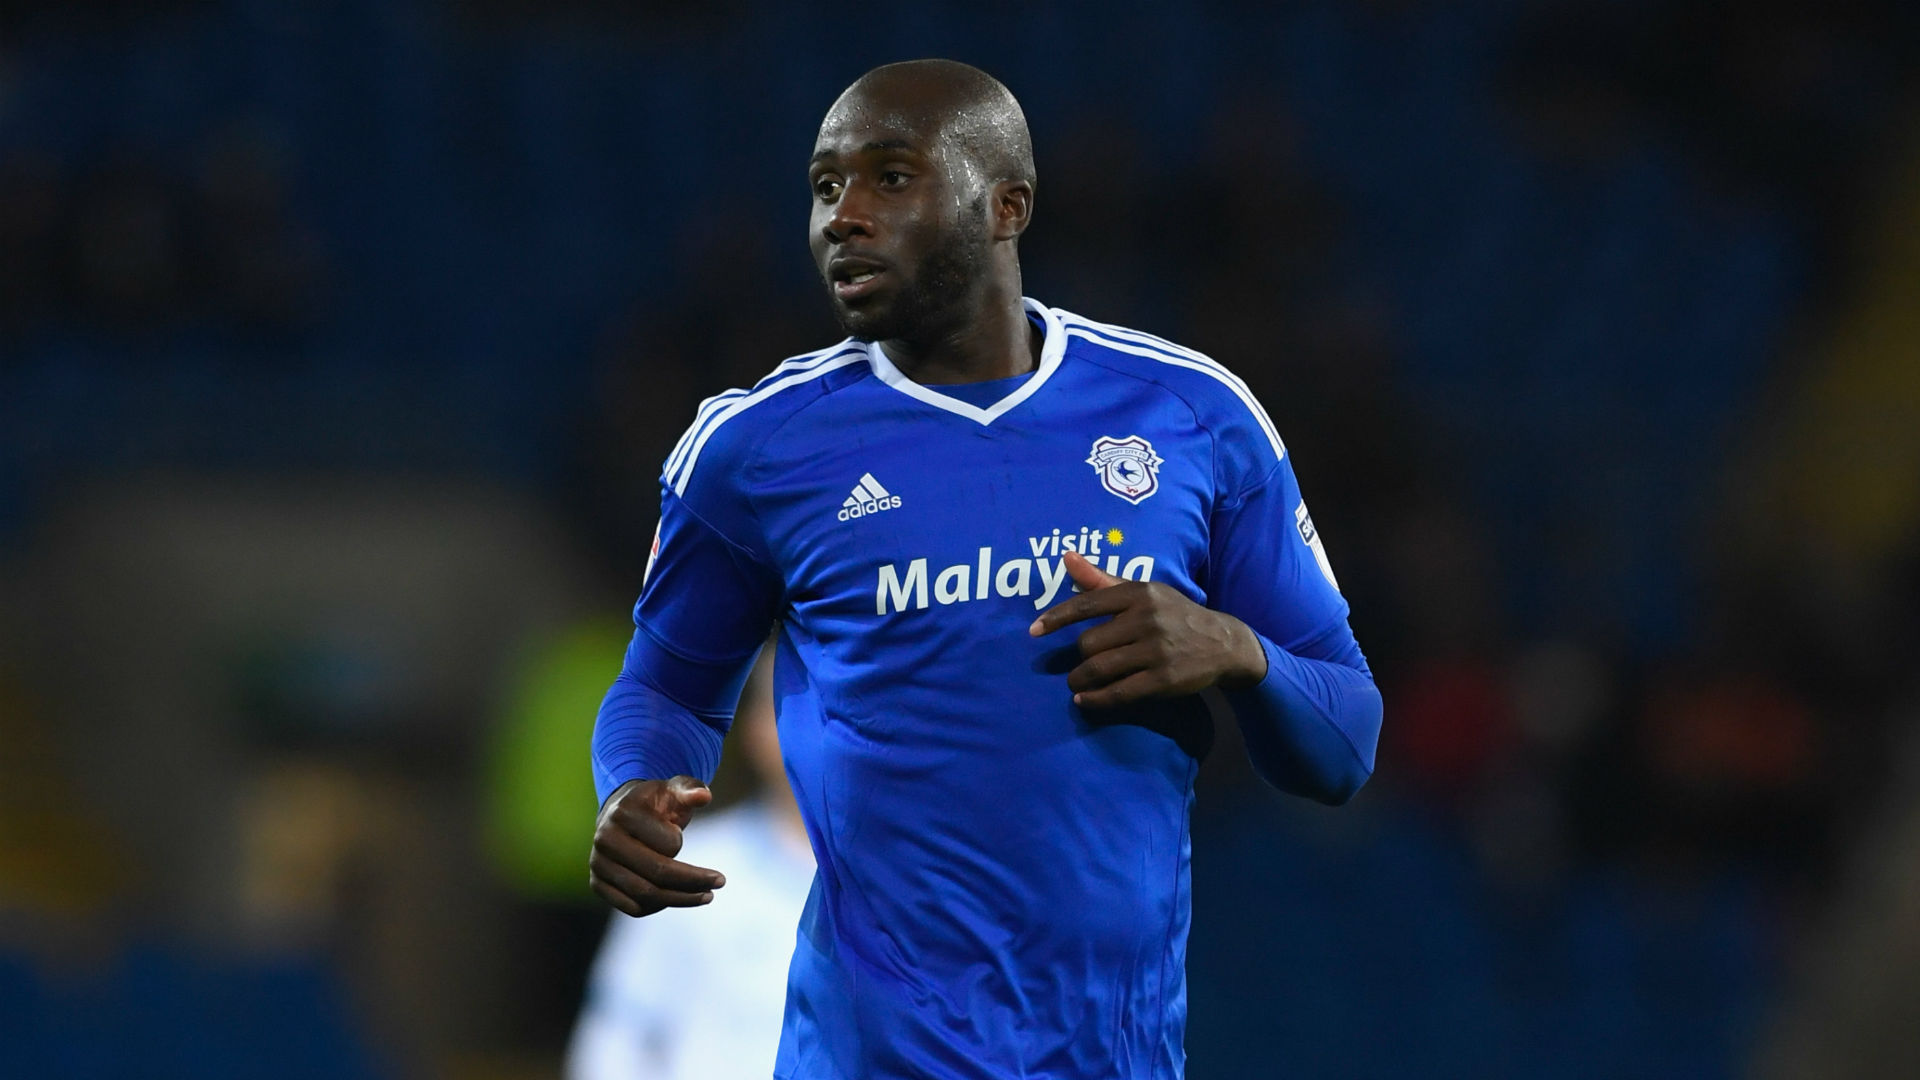 Bamba hopes Cardiff City can return to Premier League